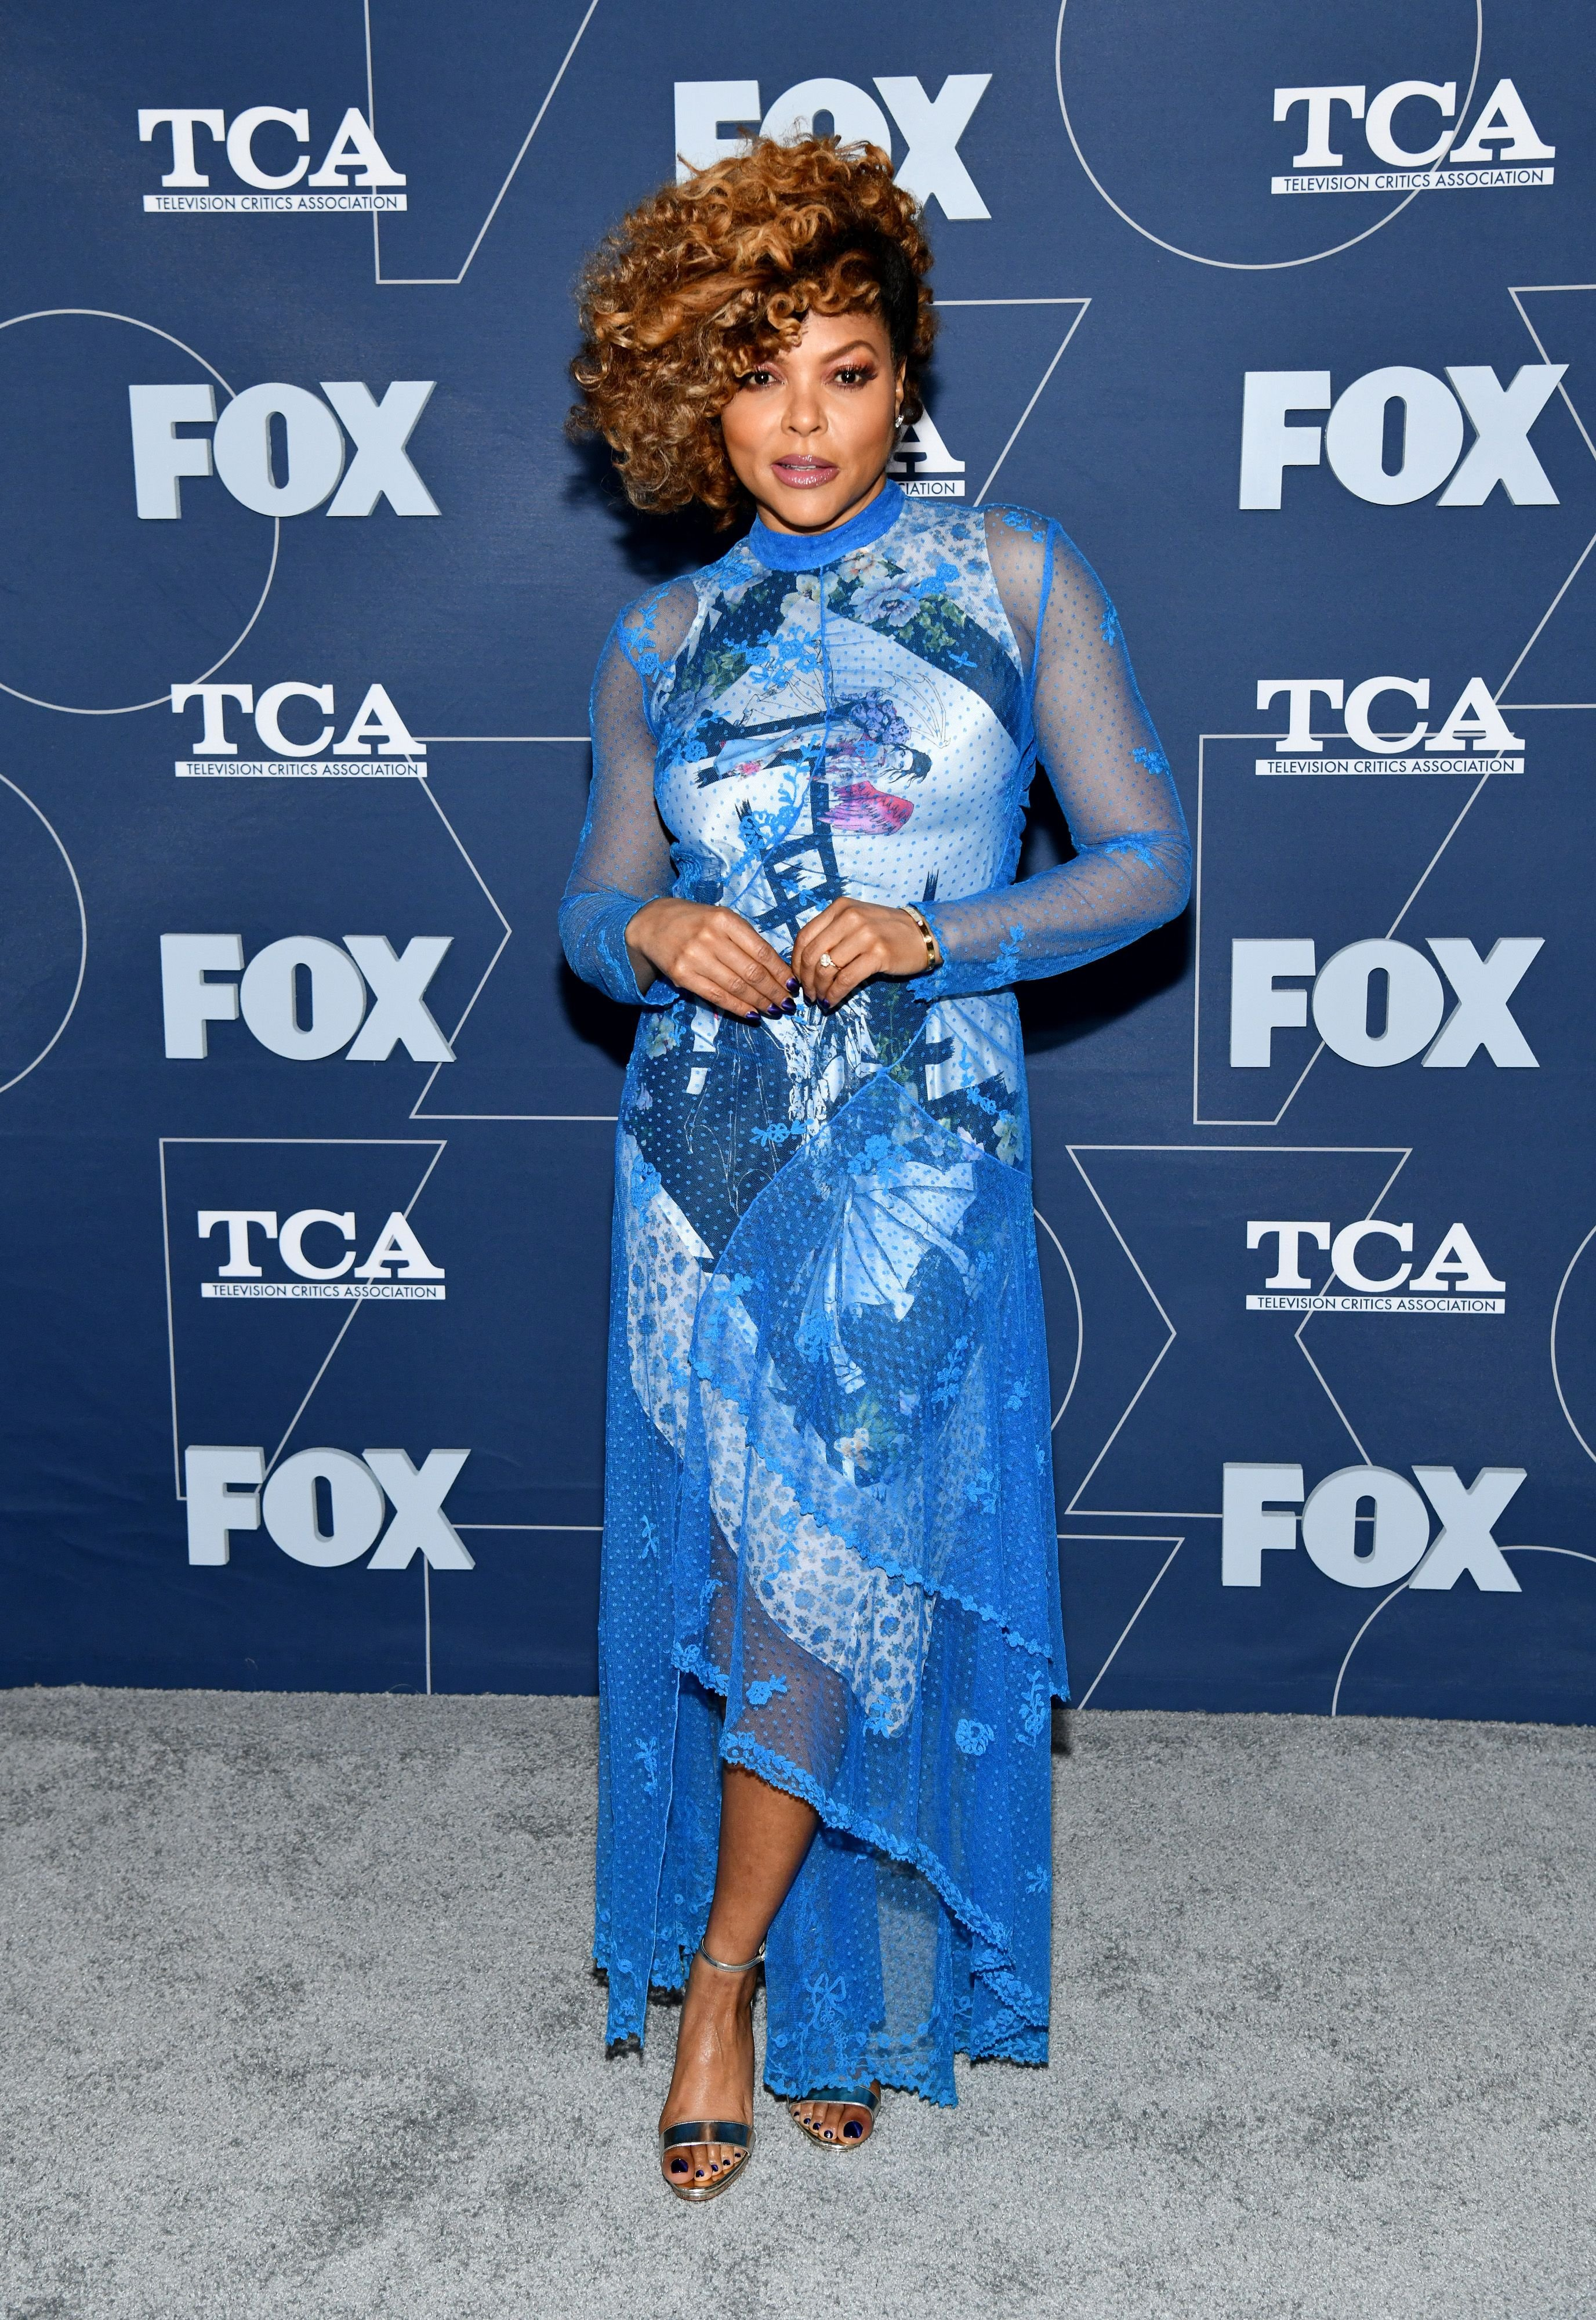 Actress Taraji P. Henson attends the Fox Winter TCA All Star Party at The Langham Huntington on January 7, 2020 in Pasadena, California. | Photo: Getty Images